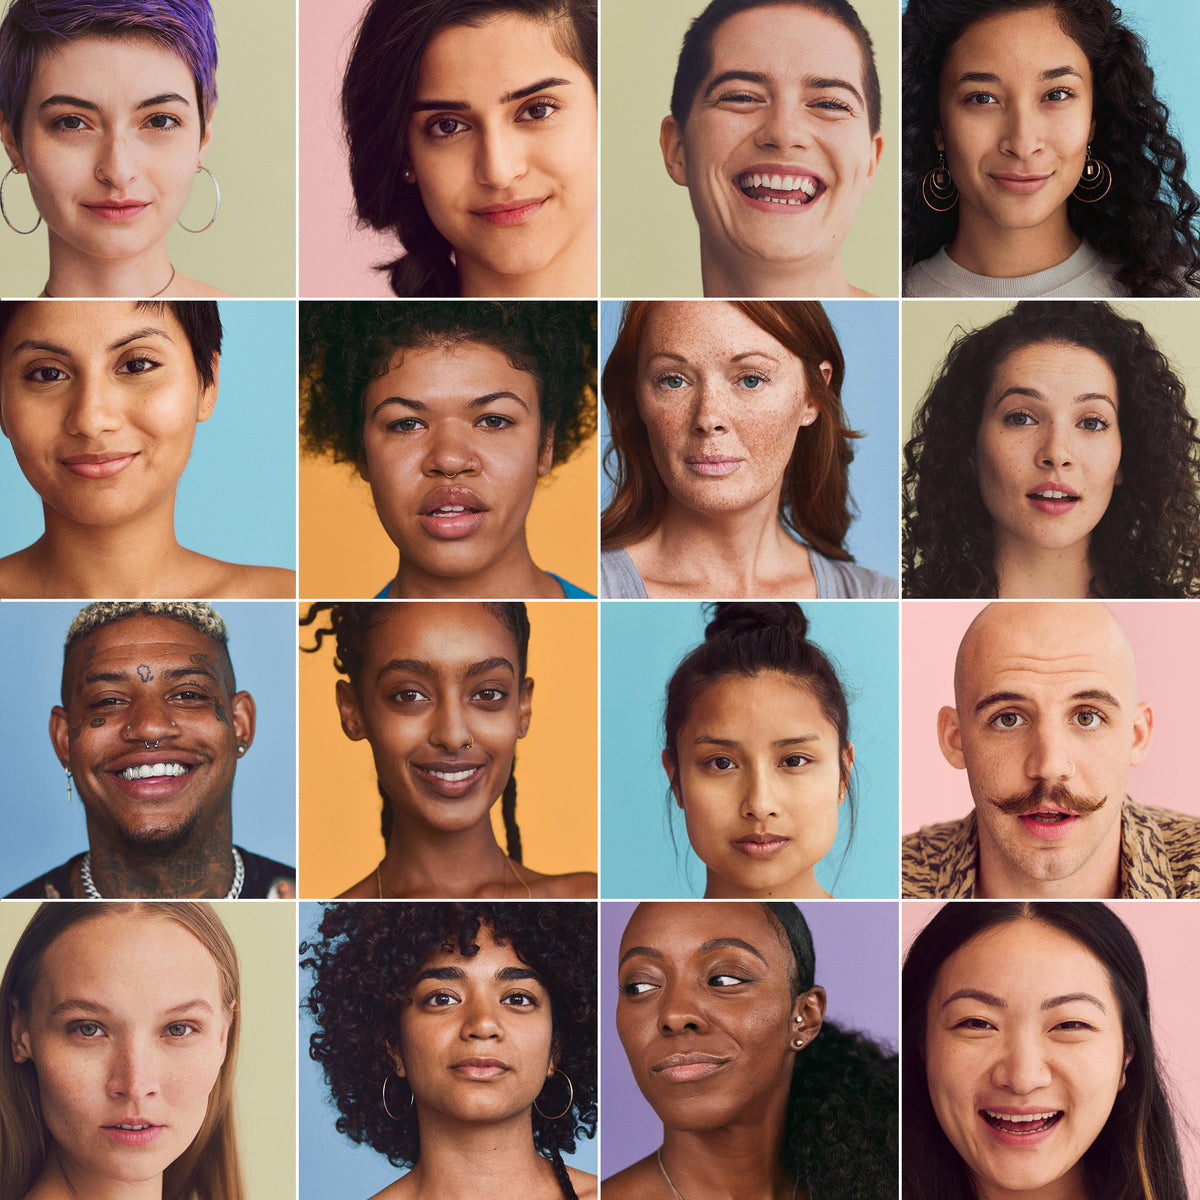 Diverse set of 16 portraits of Skinsei customers in a grid, showing a variety of skin types.